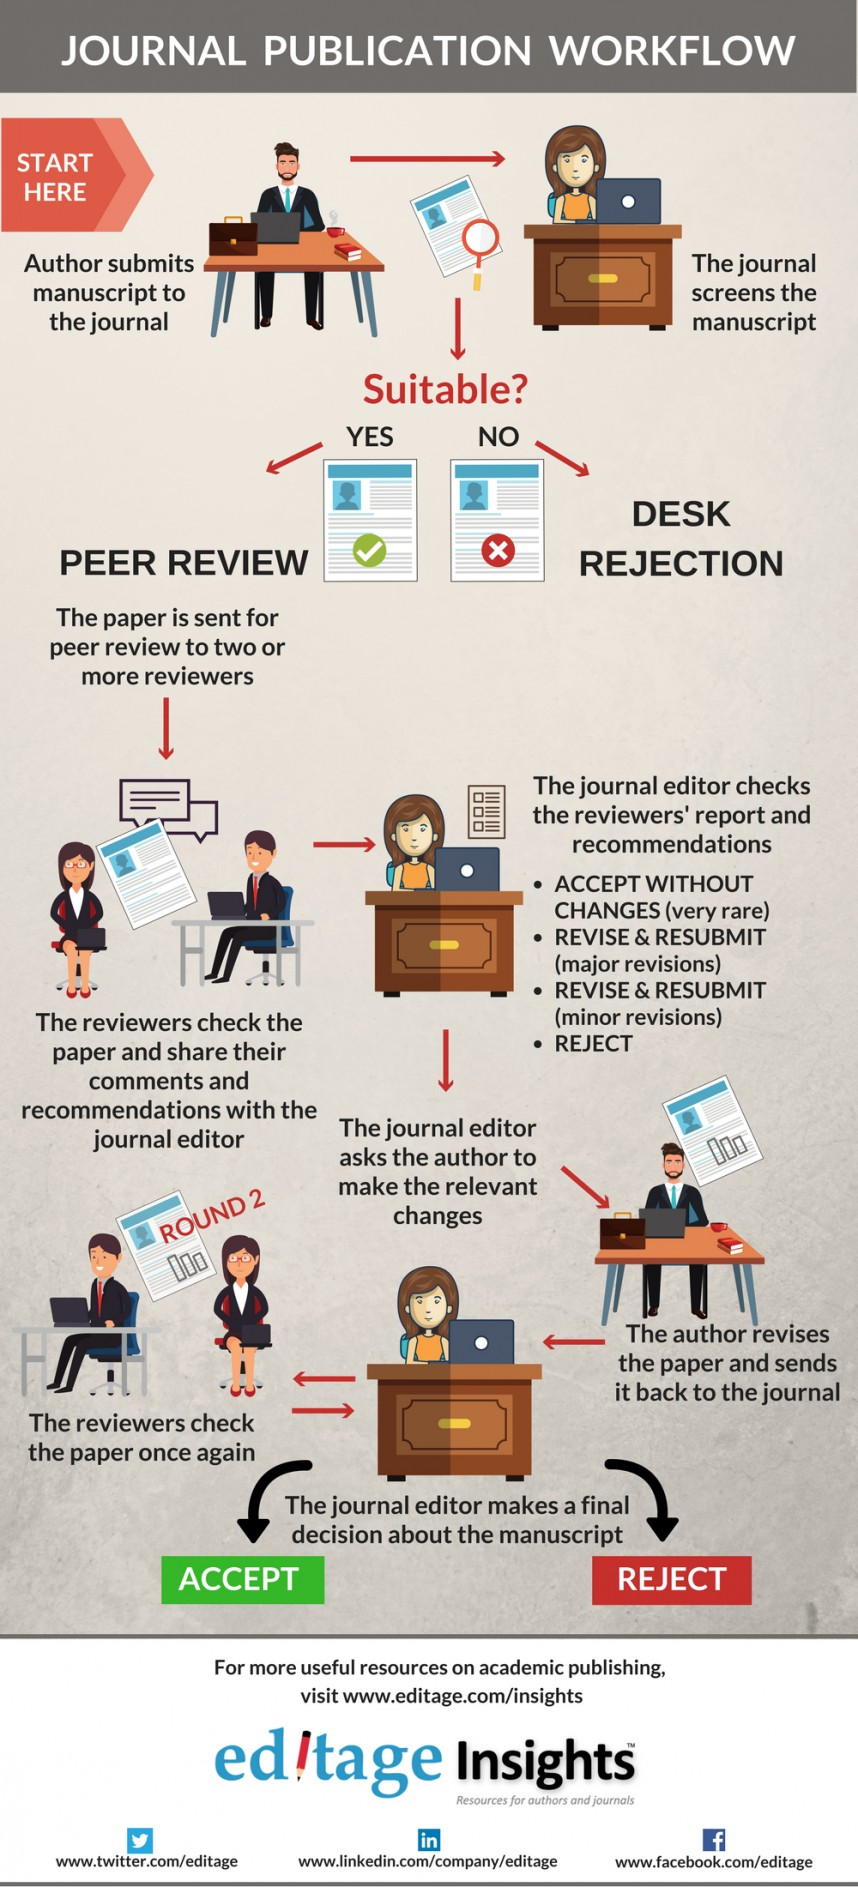 002 Journal Publishing Workflow Journals To Publish Researchs Beautiful Research Papers List Of Best International Paper In Computer Science